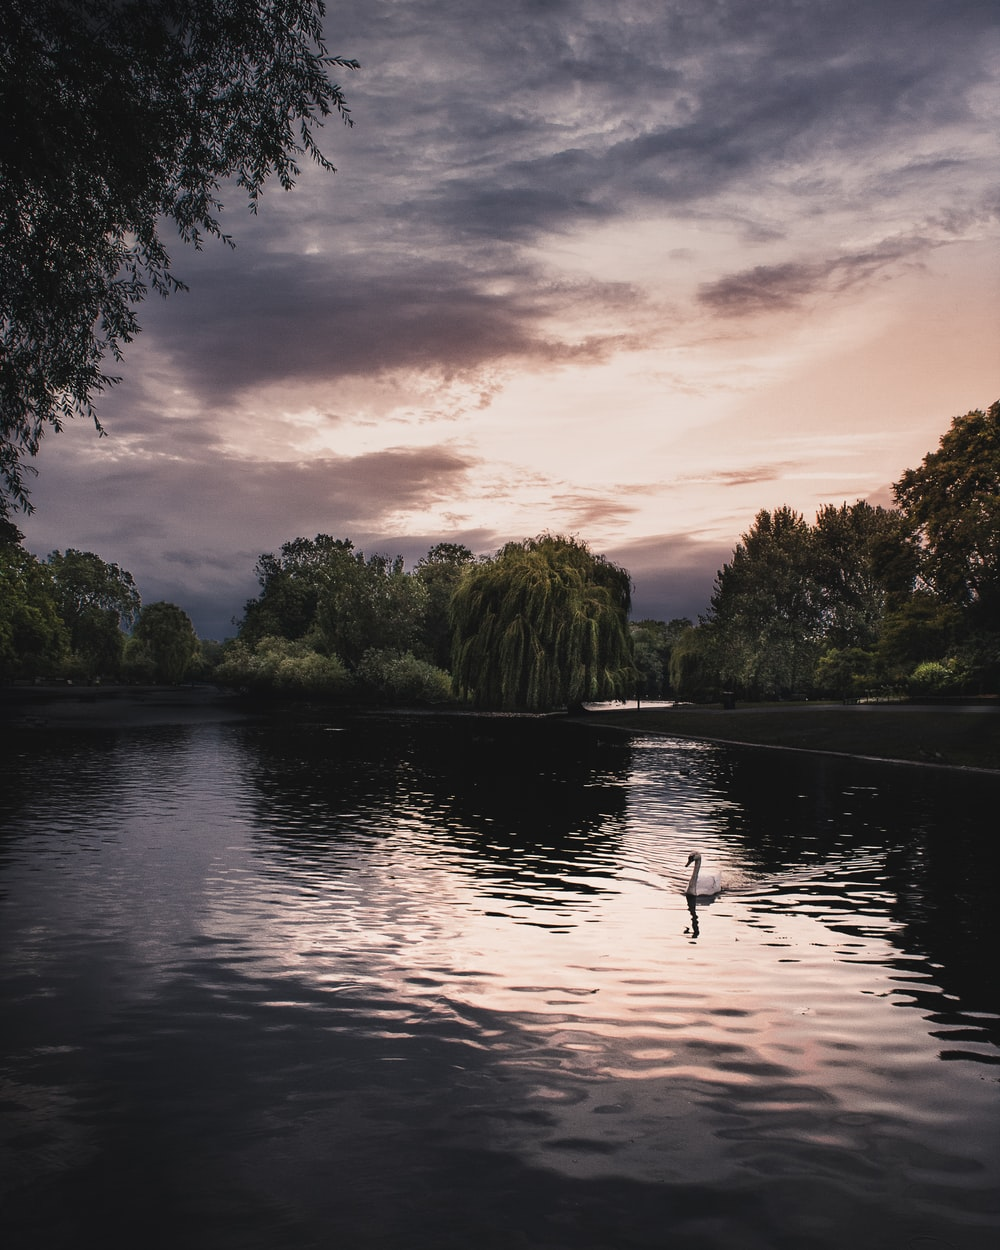 swan on body of water surrounded by trees under cloudy sky